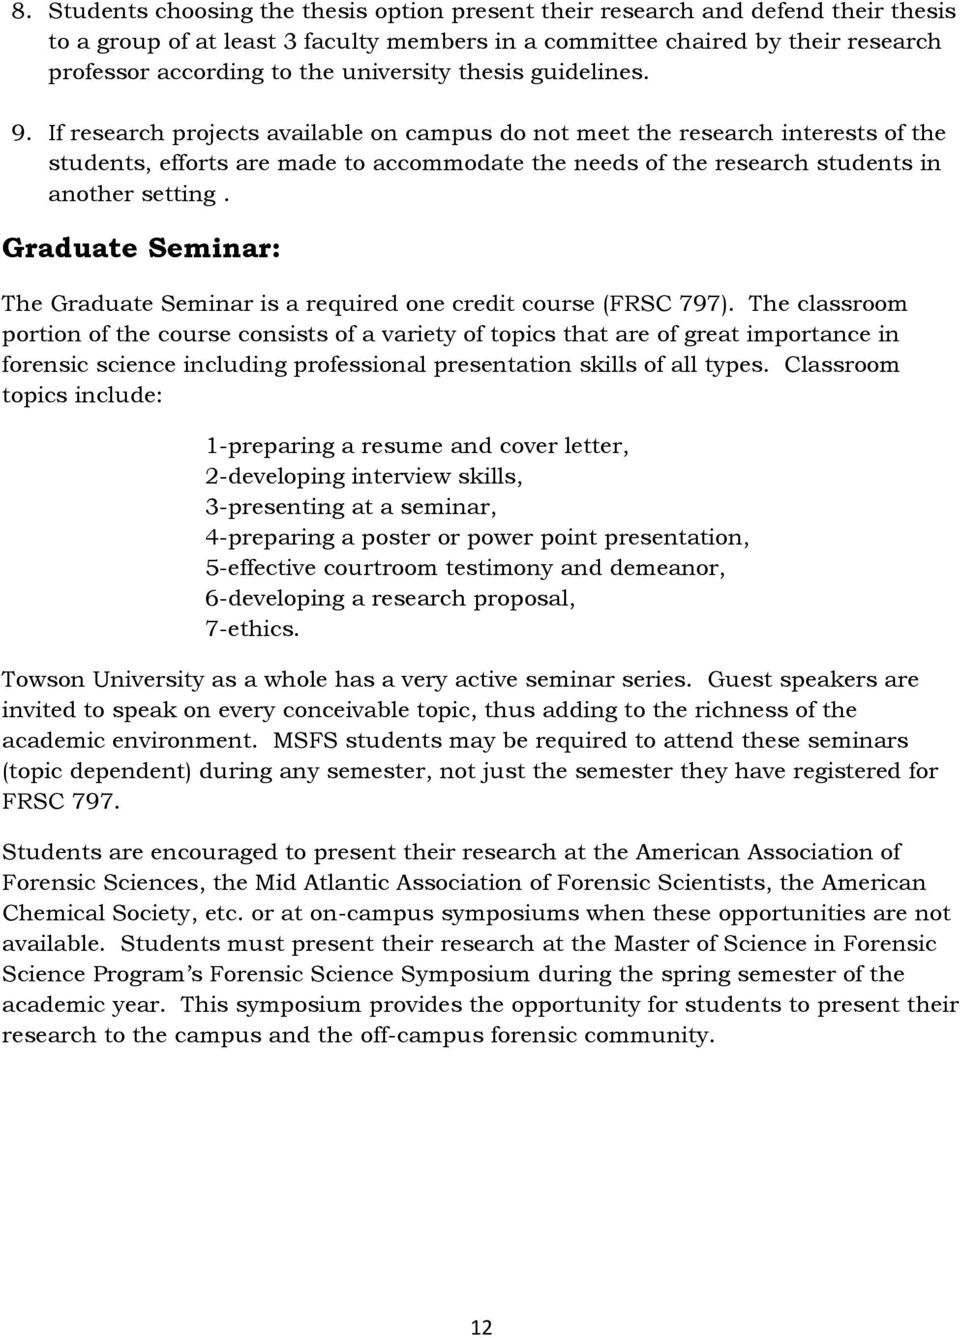 master of science in forensic science pdf if research projects available on campus do not meet the research interests of the students